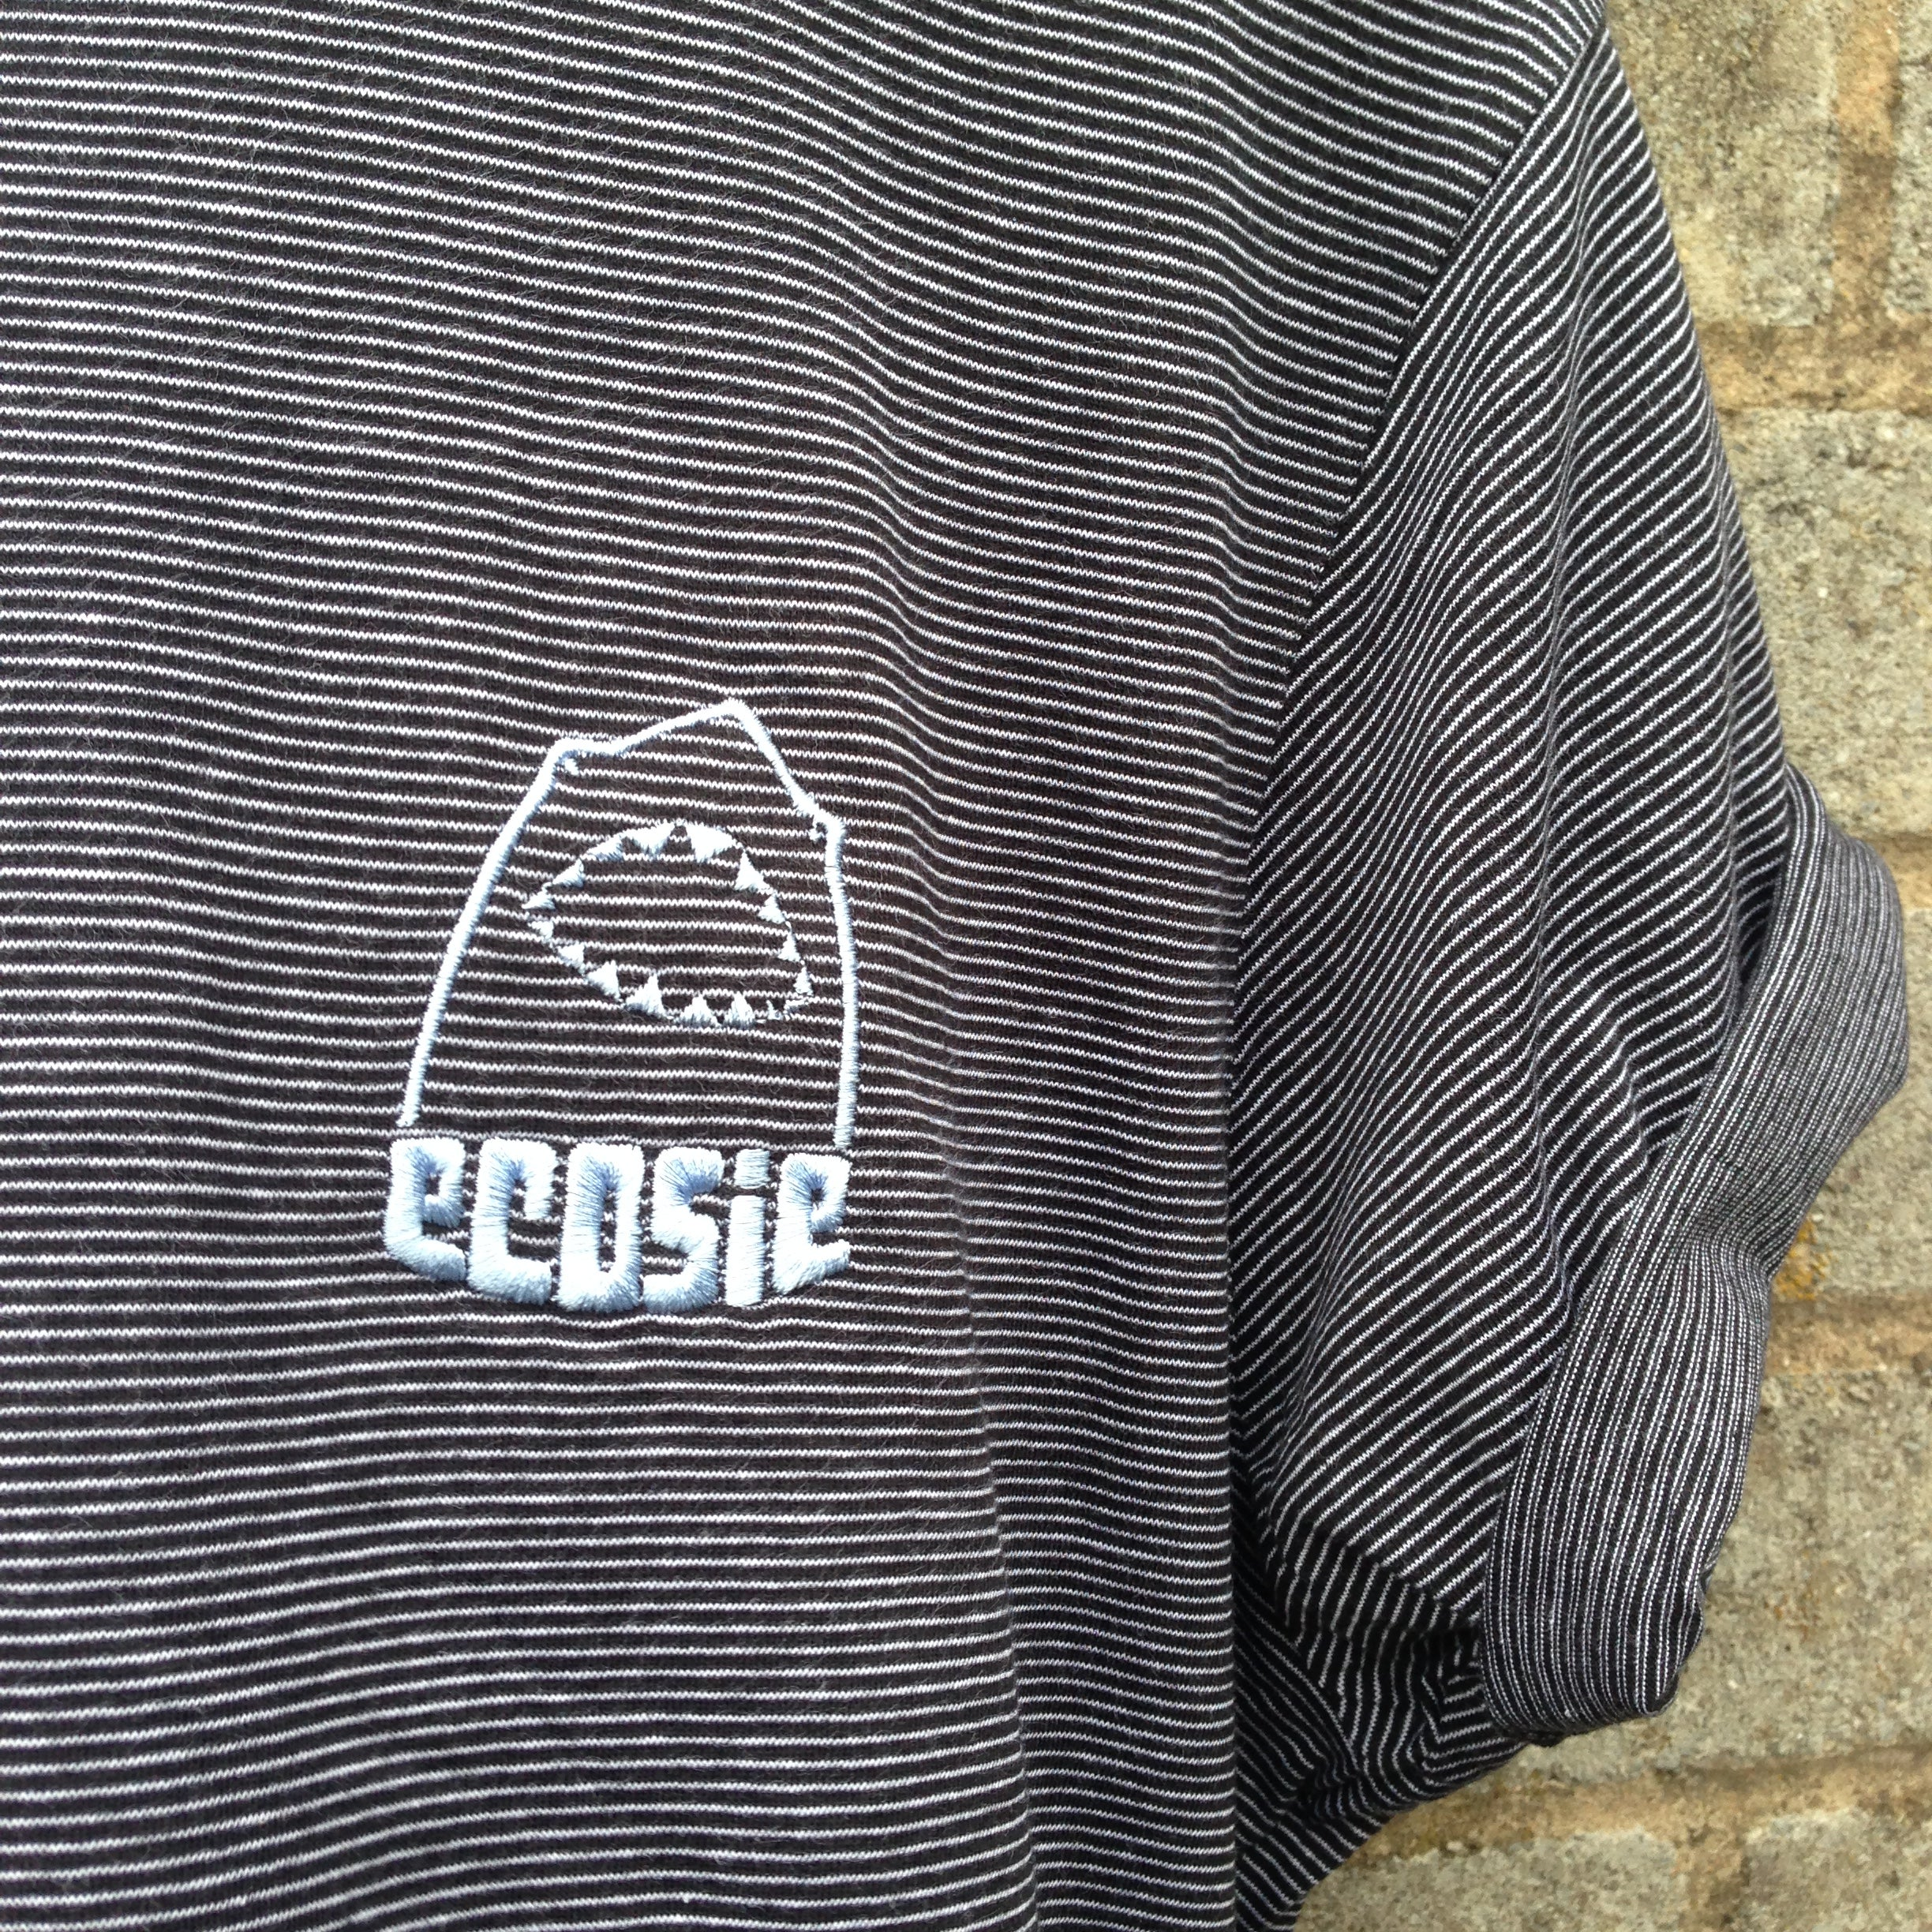 7002e9f3717 Line Up Ecosie McSharky Embroidered Organic Cotton T-Shirt